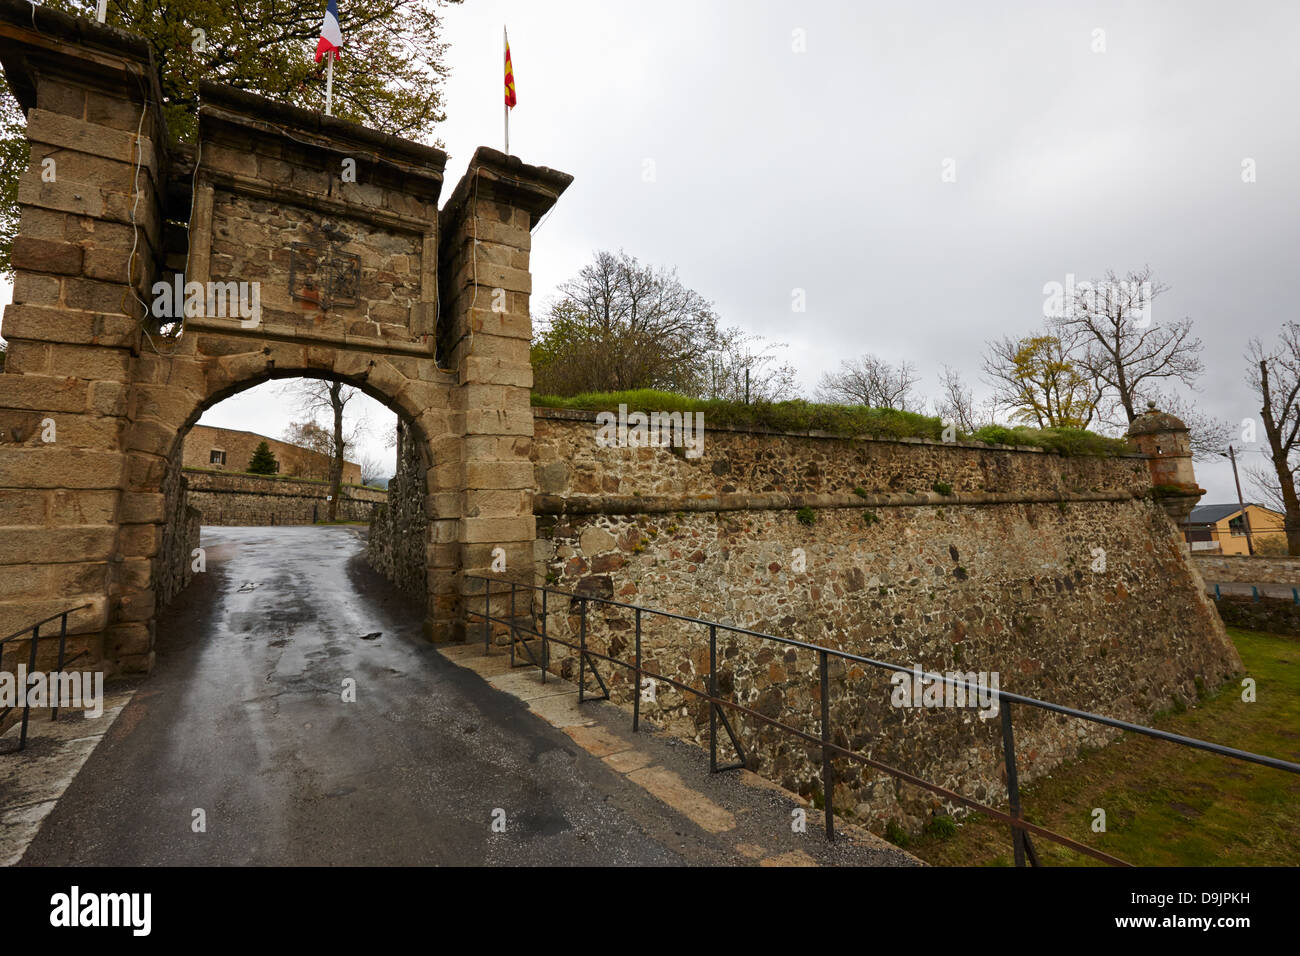 gateway and bastion of mont-louis fortress of vauban unesco world heritage site city walls pyrenees-orientales france - Stock Image